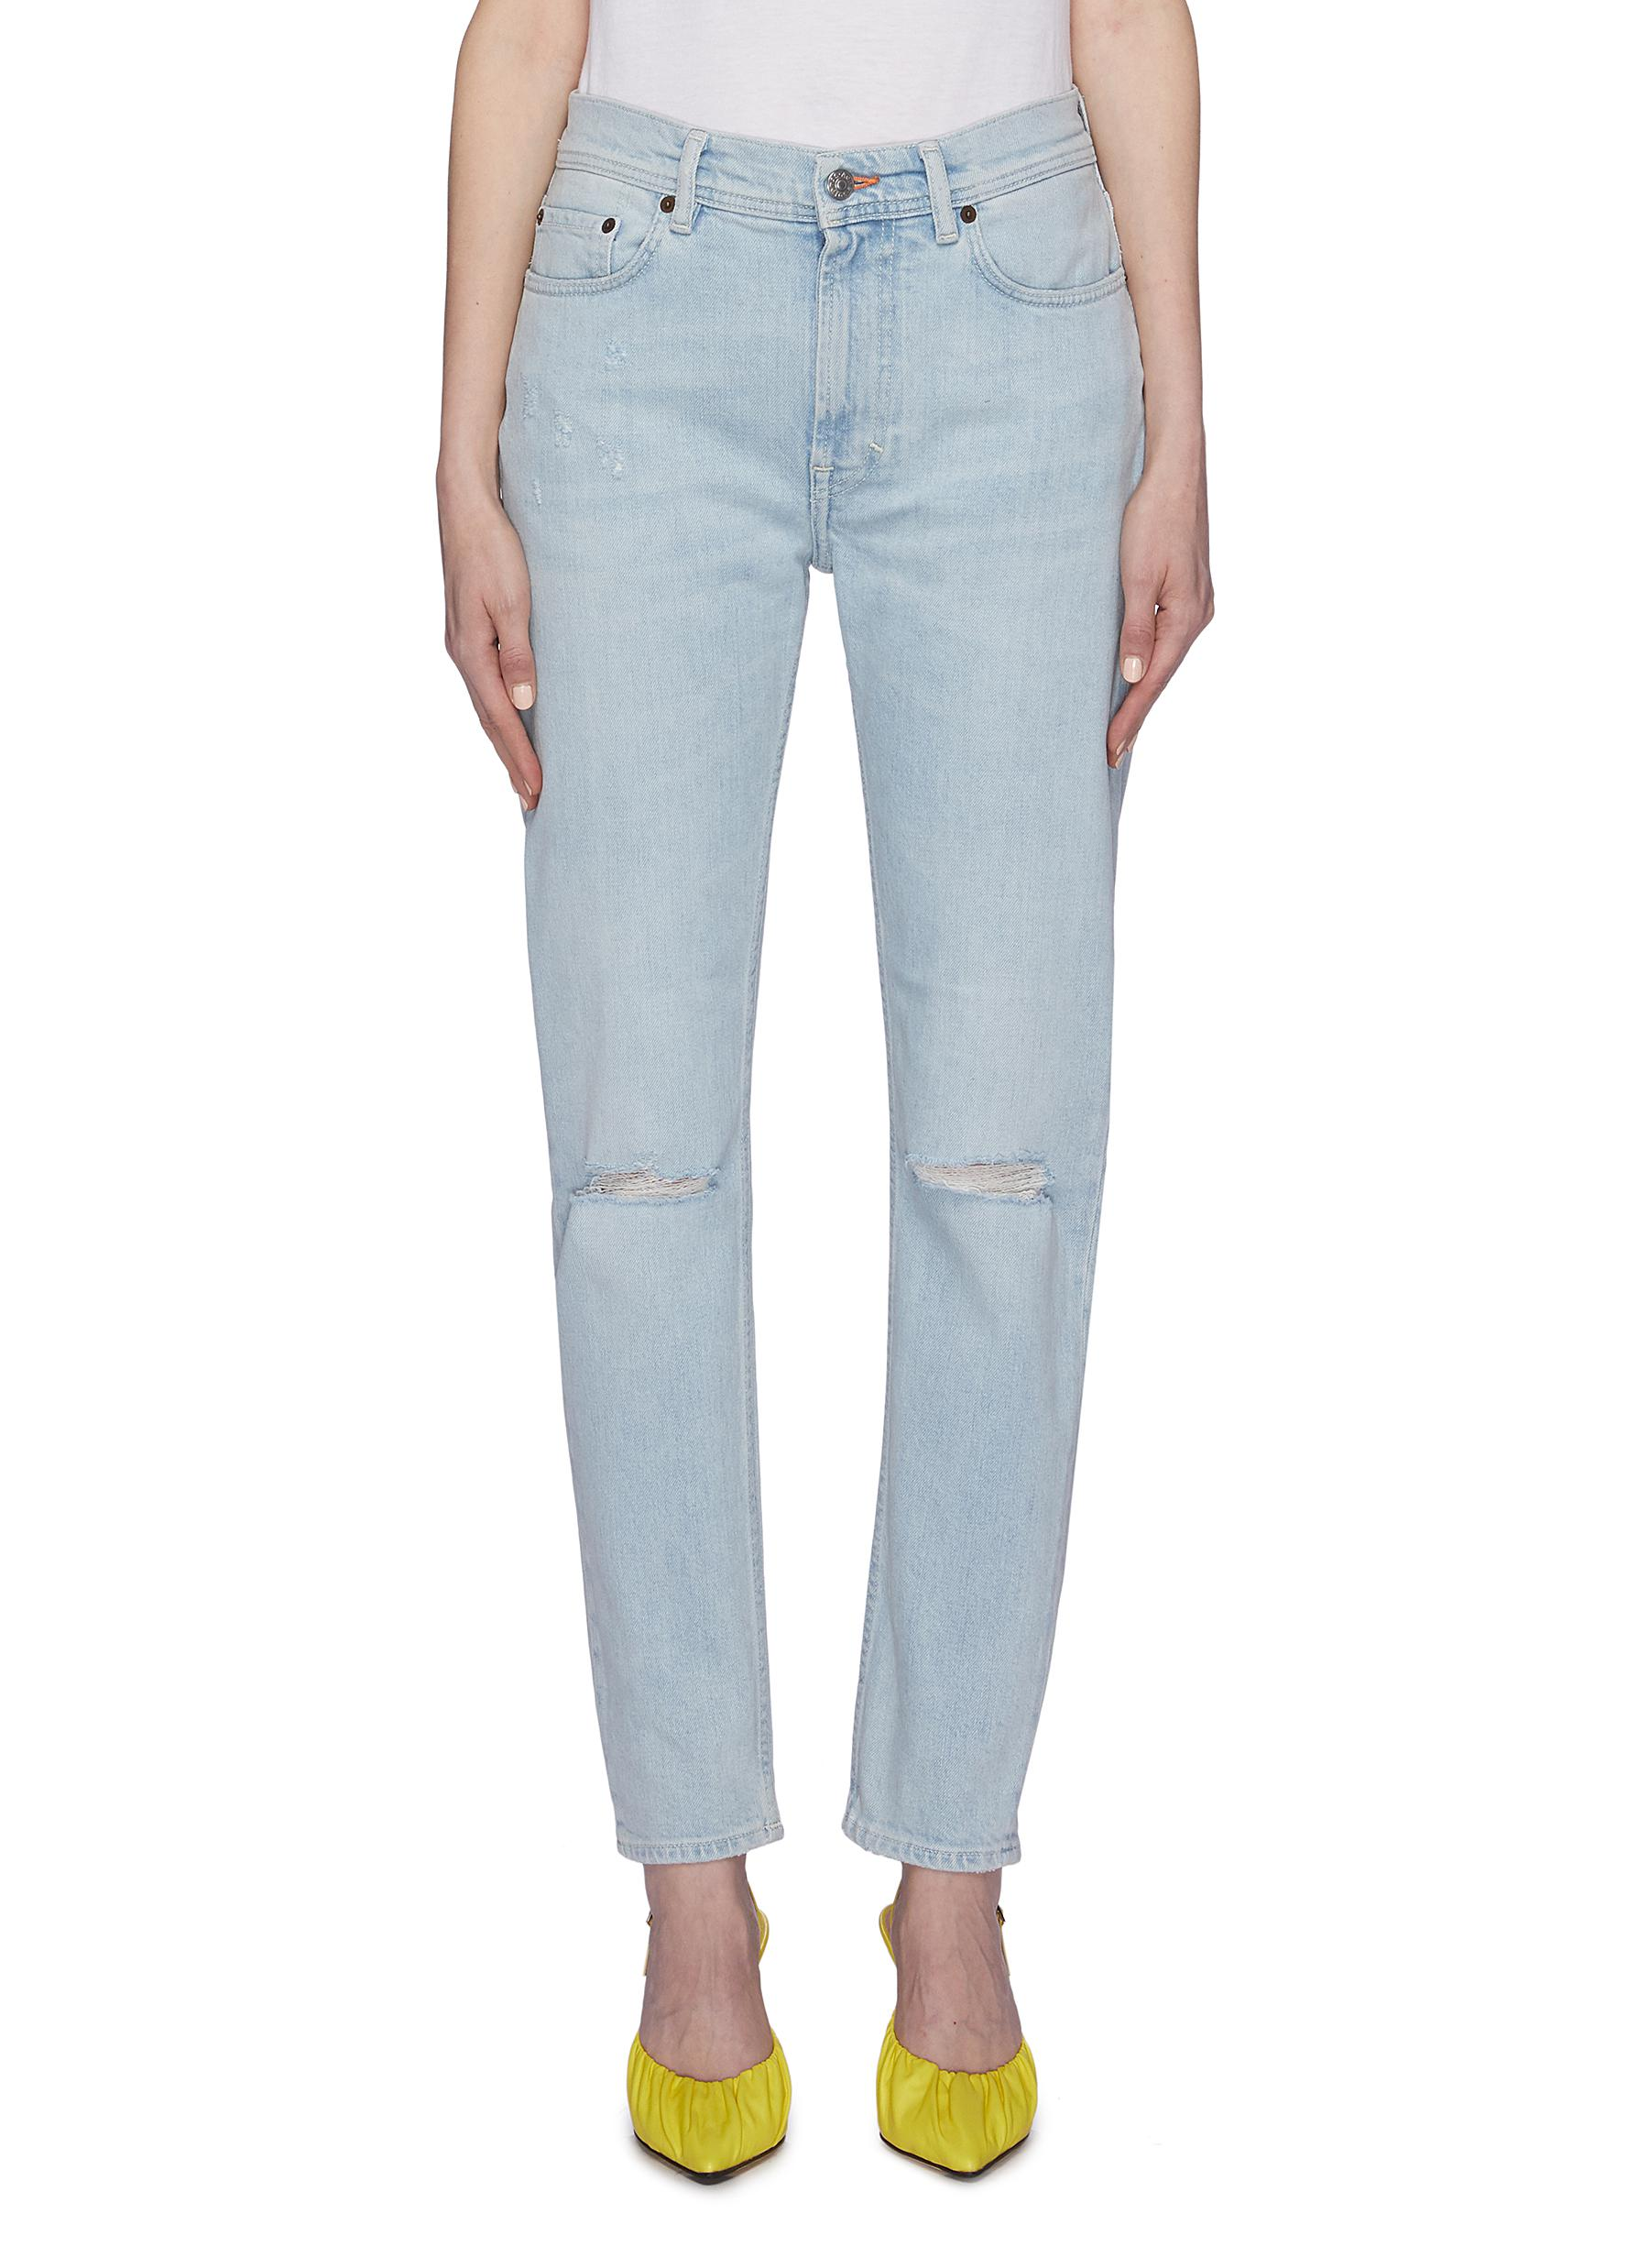 Ripped skinny jeans by Acne Studios